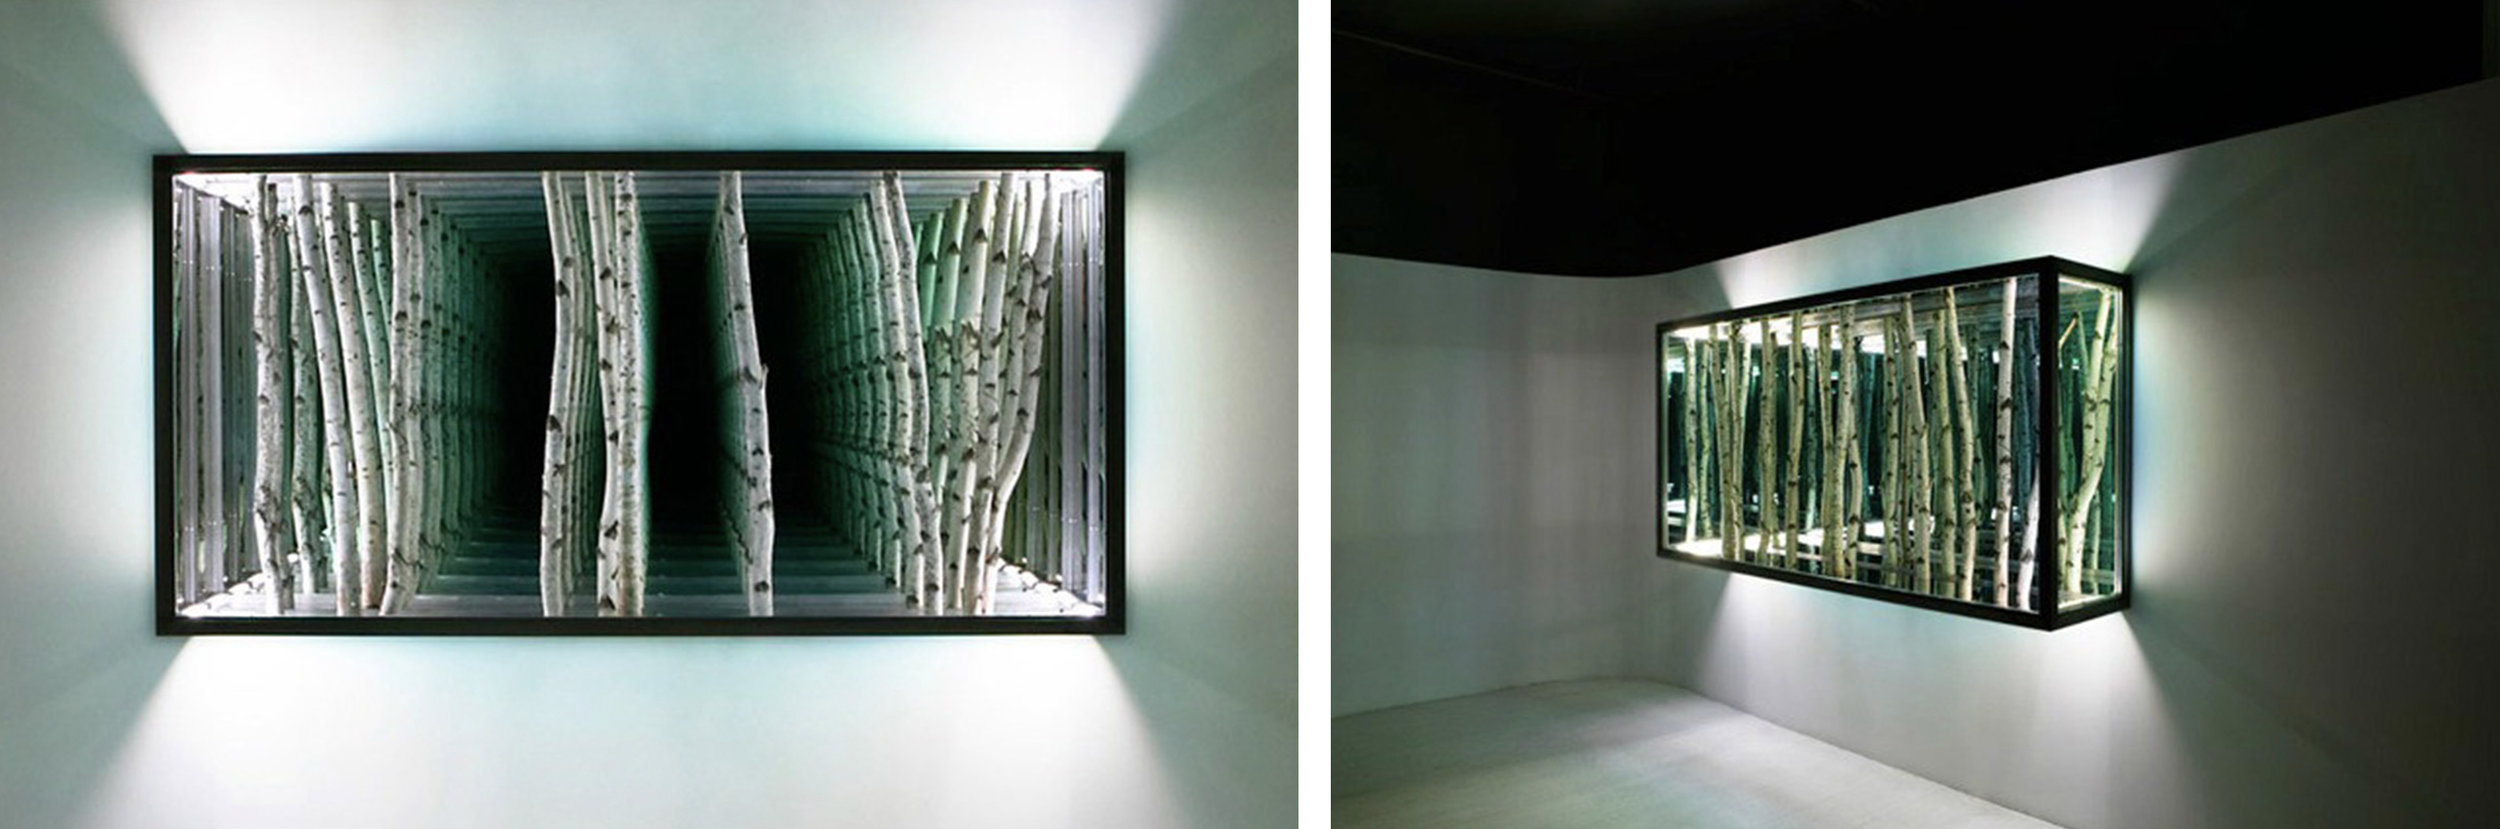 Anthony James  Birch Wall Mounted 2007  Birch, aluminum, glass, fluorescent lights  48 x 96 x 20 inches      View More Anthony James